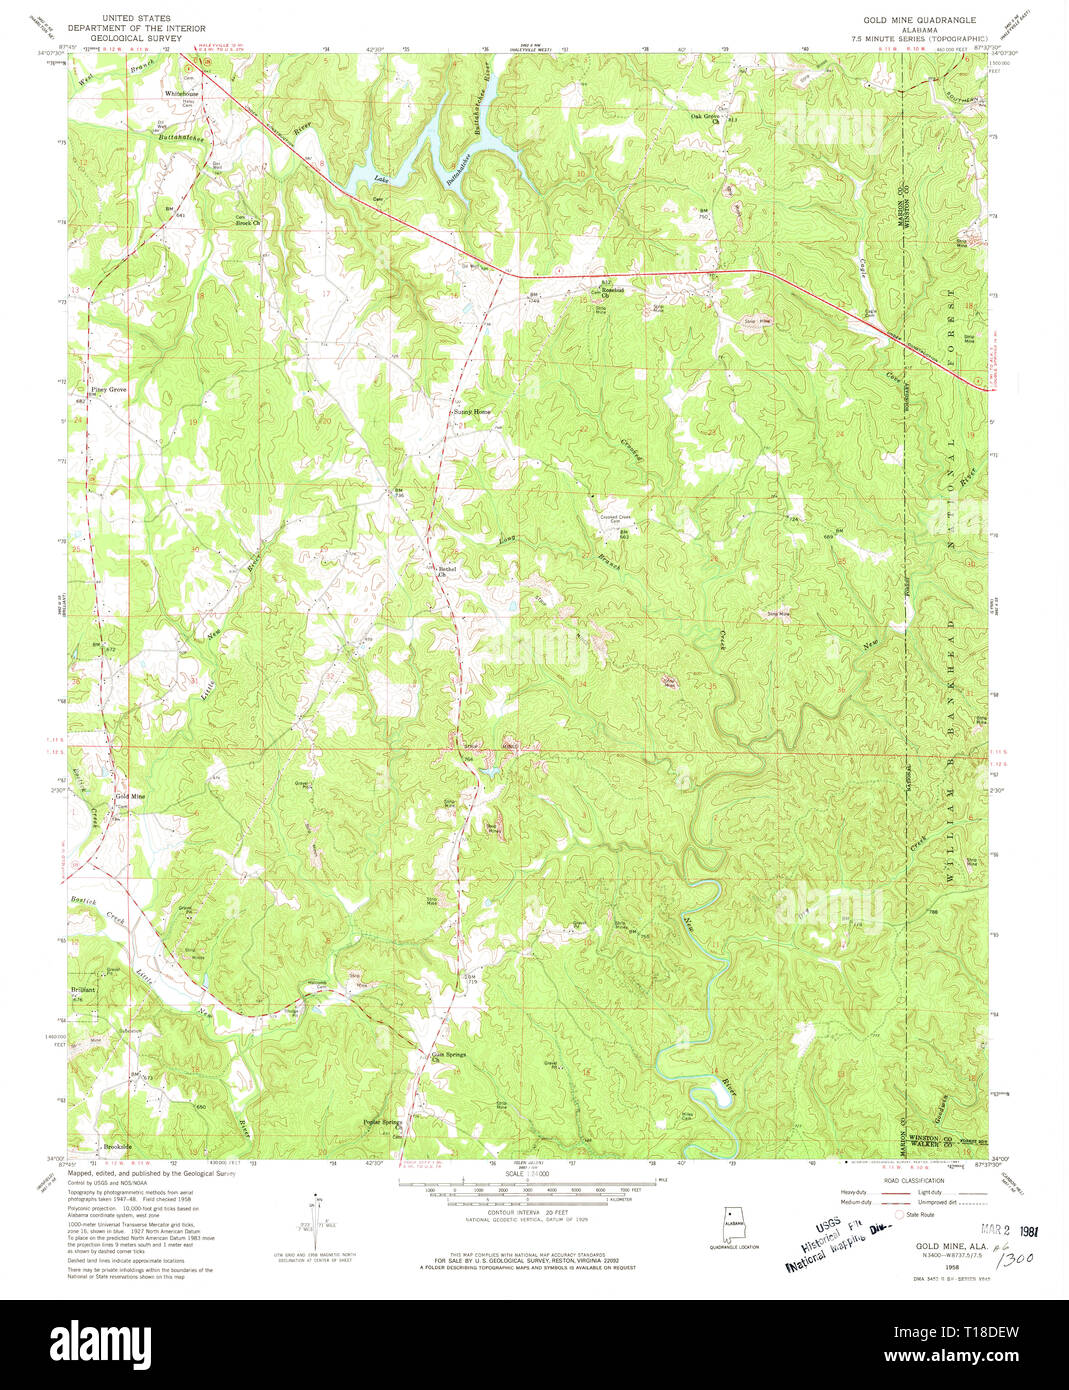 Gold Mine Cut Out Stock Images & Pictures - Alamy Raw Materials Map Of Alabama on people map, greenland map, manufacturing map, raw resources world map, transportation map,